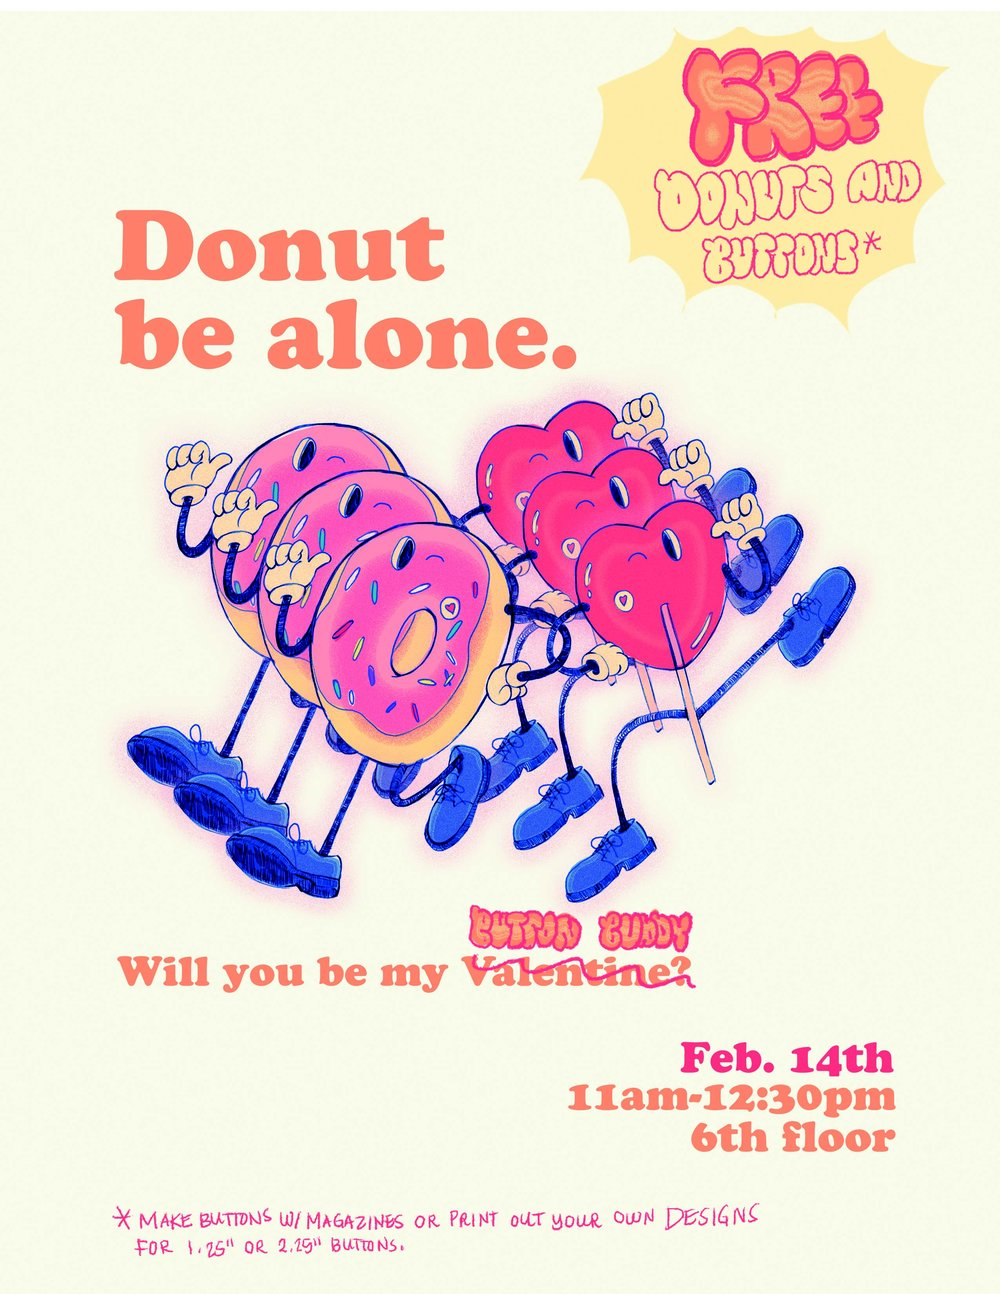 Donut Be Alone